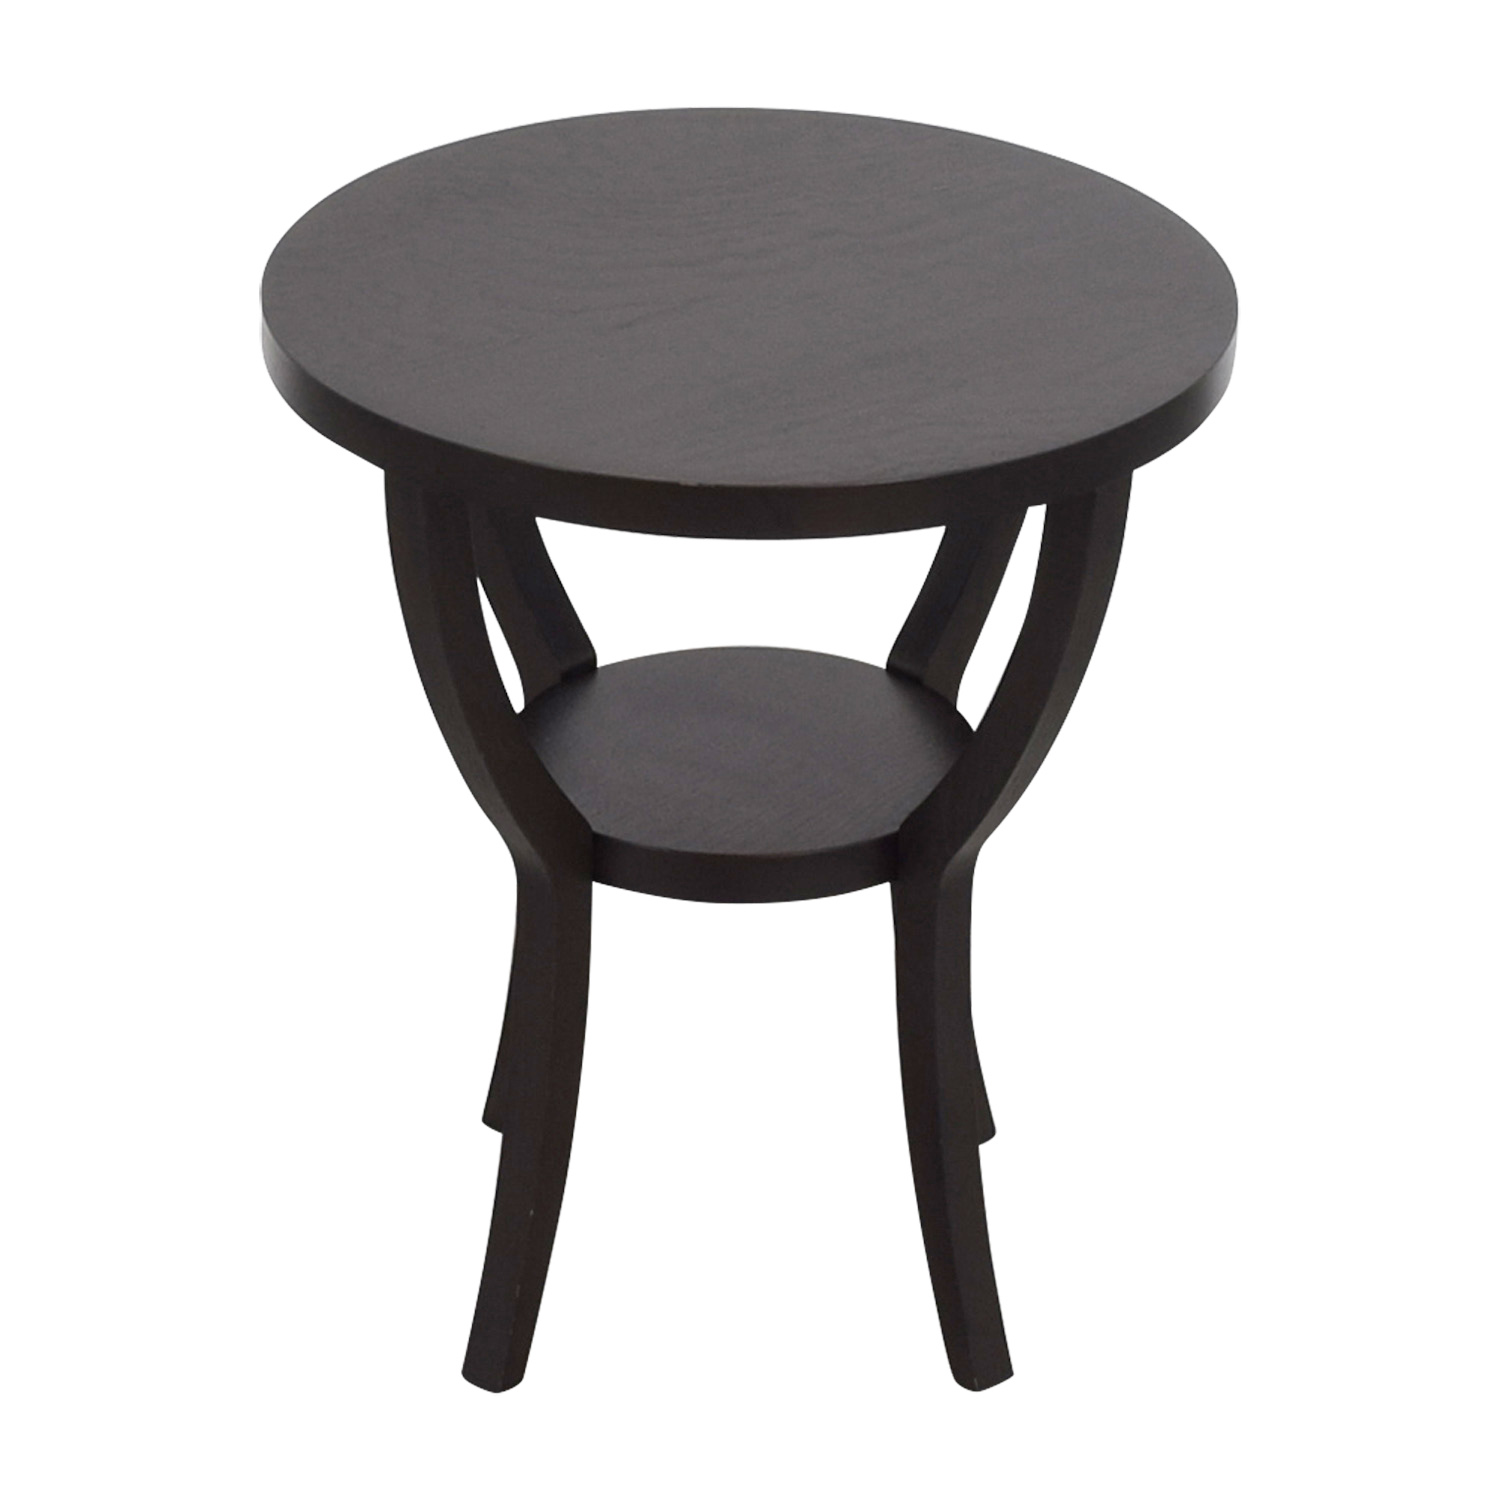 West Elm West Elm Mahogany Round Side Table dimensions